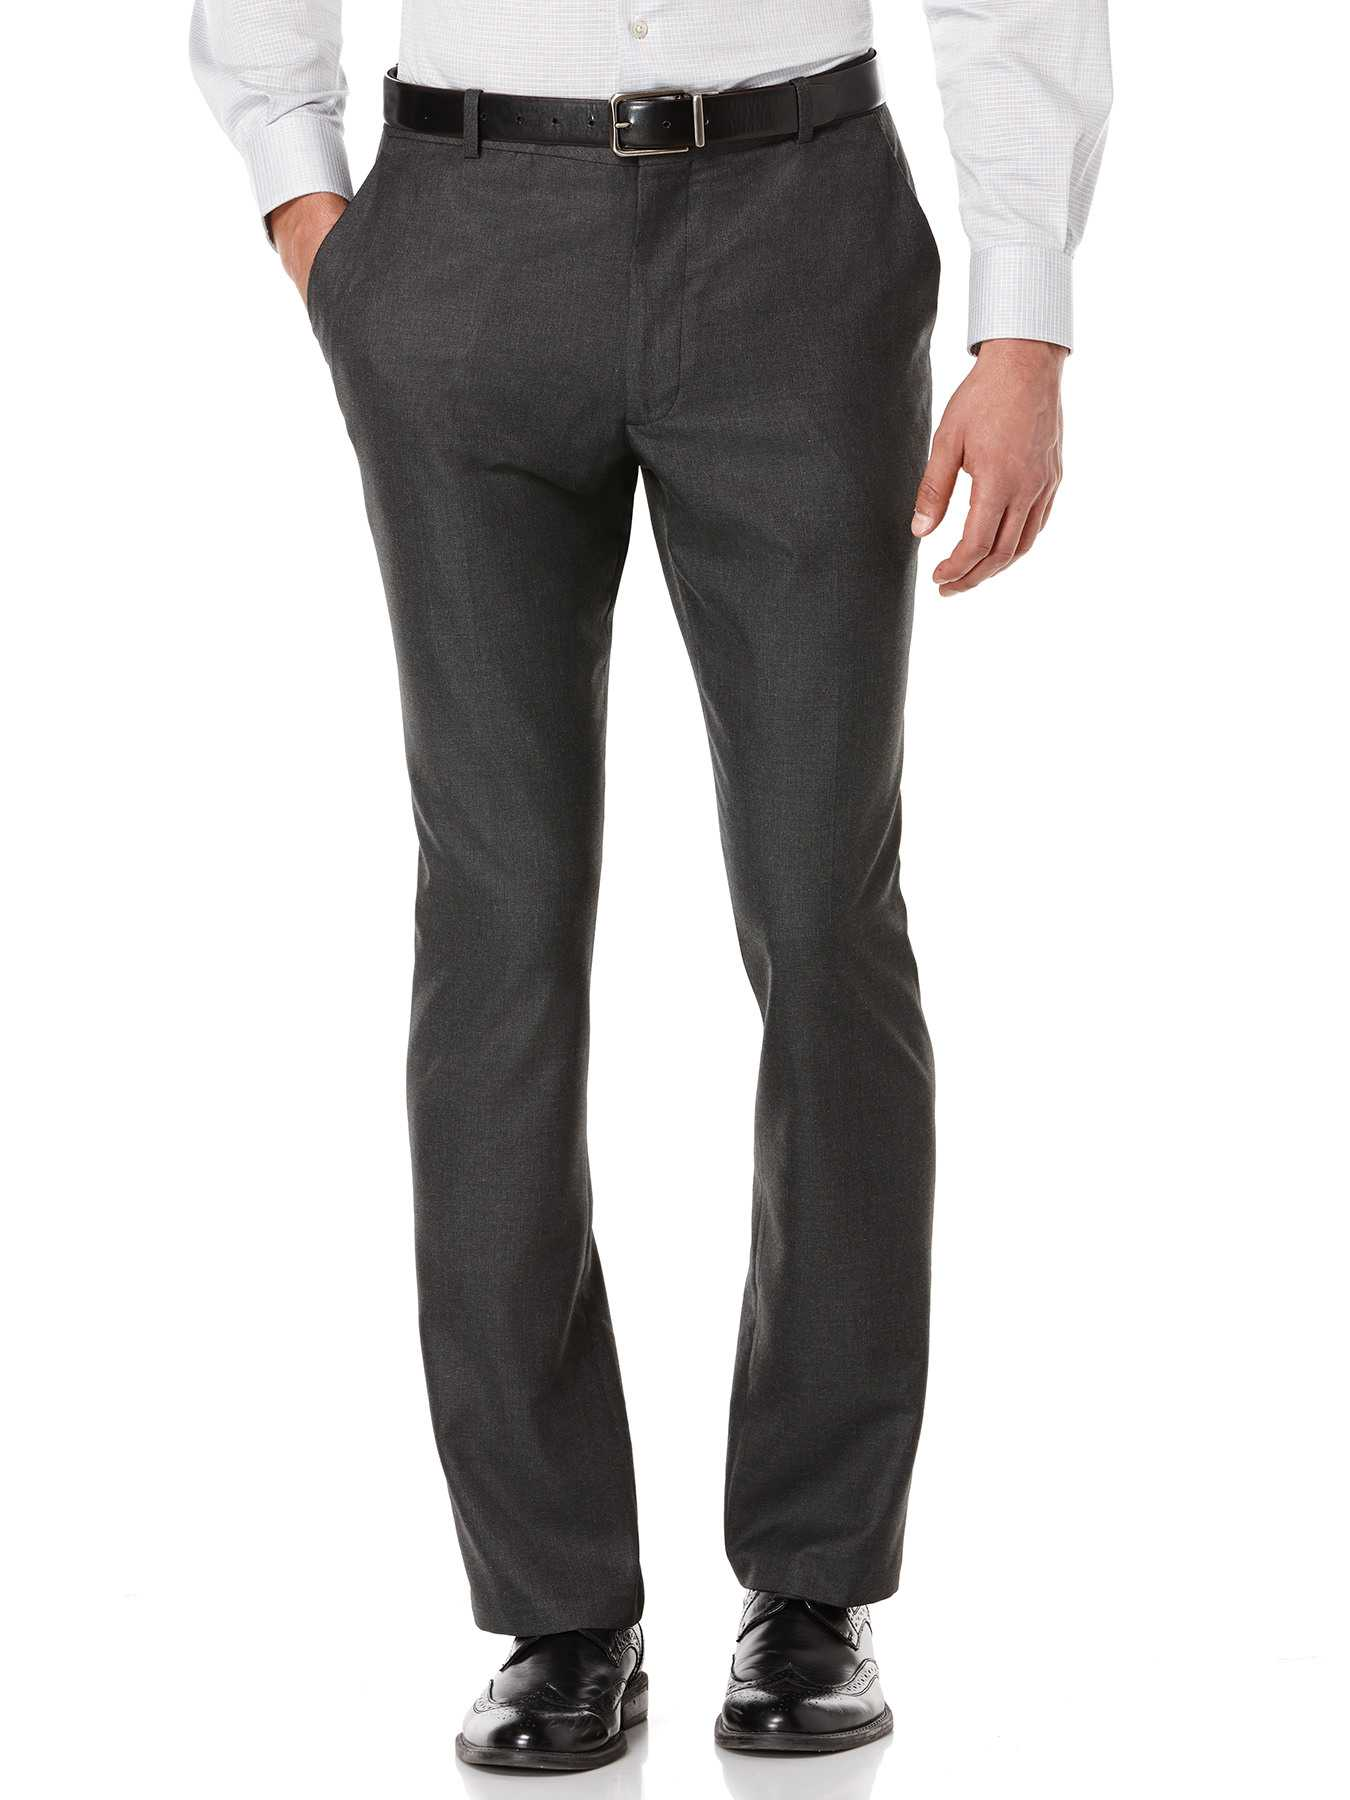 Perry Ellis Slim Fit Neat Portfolio Dress Pant